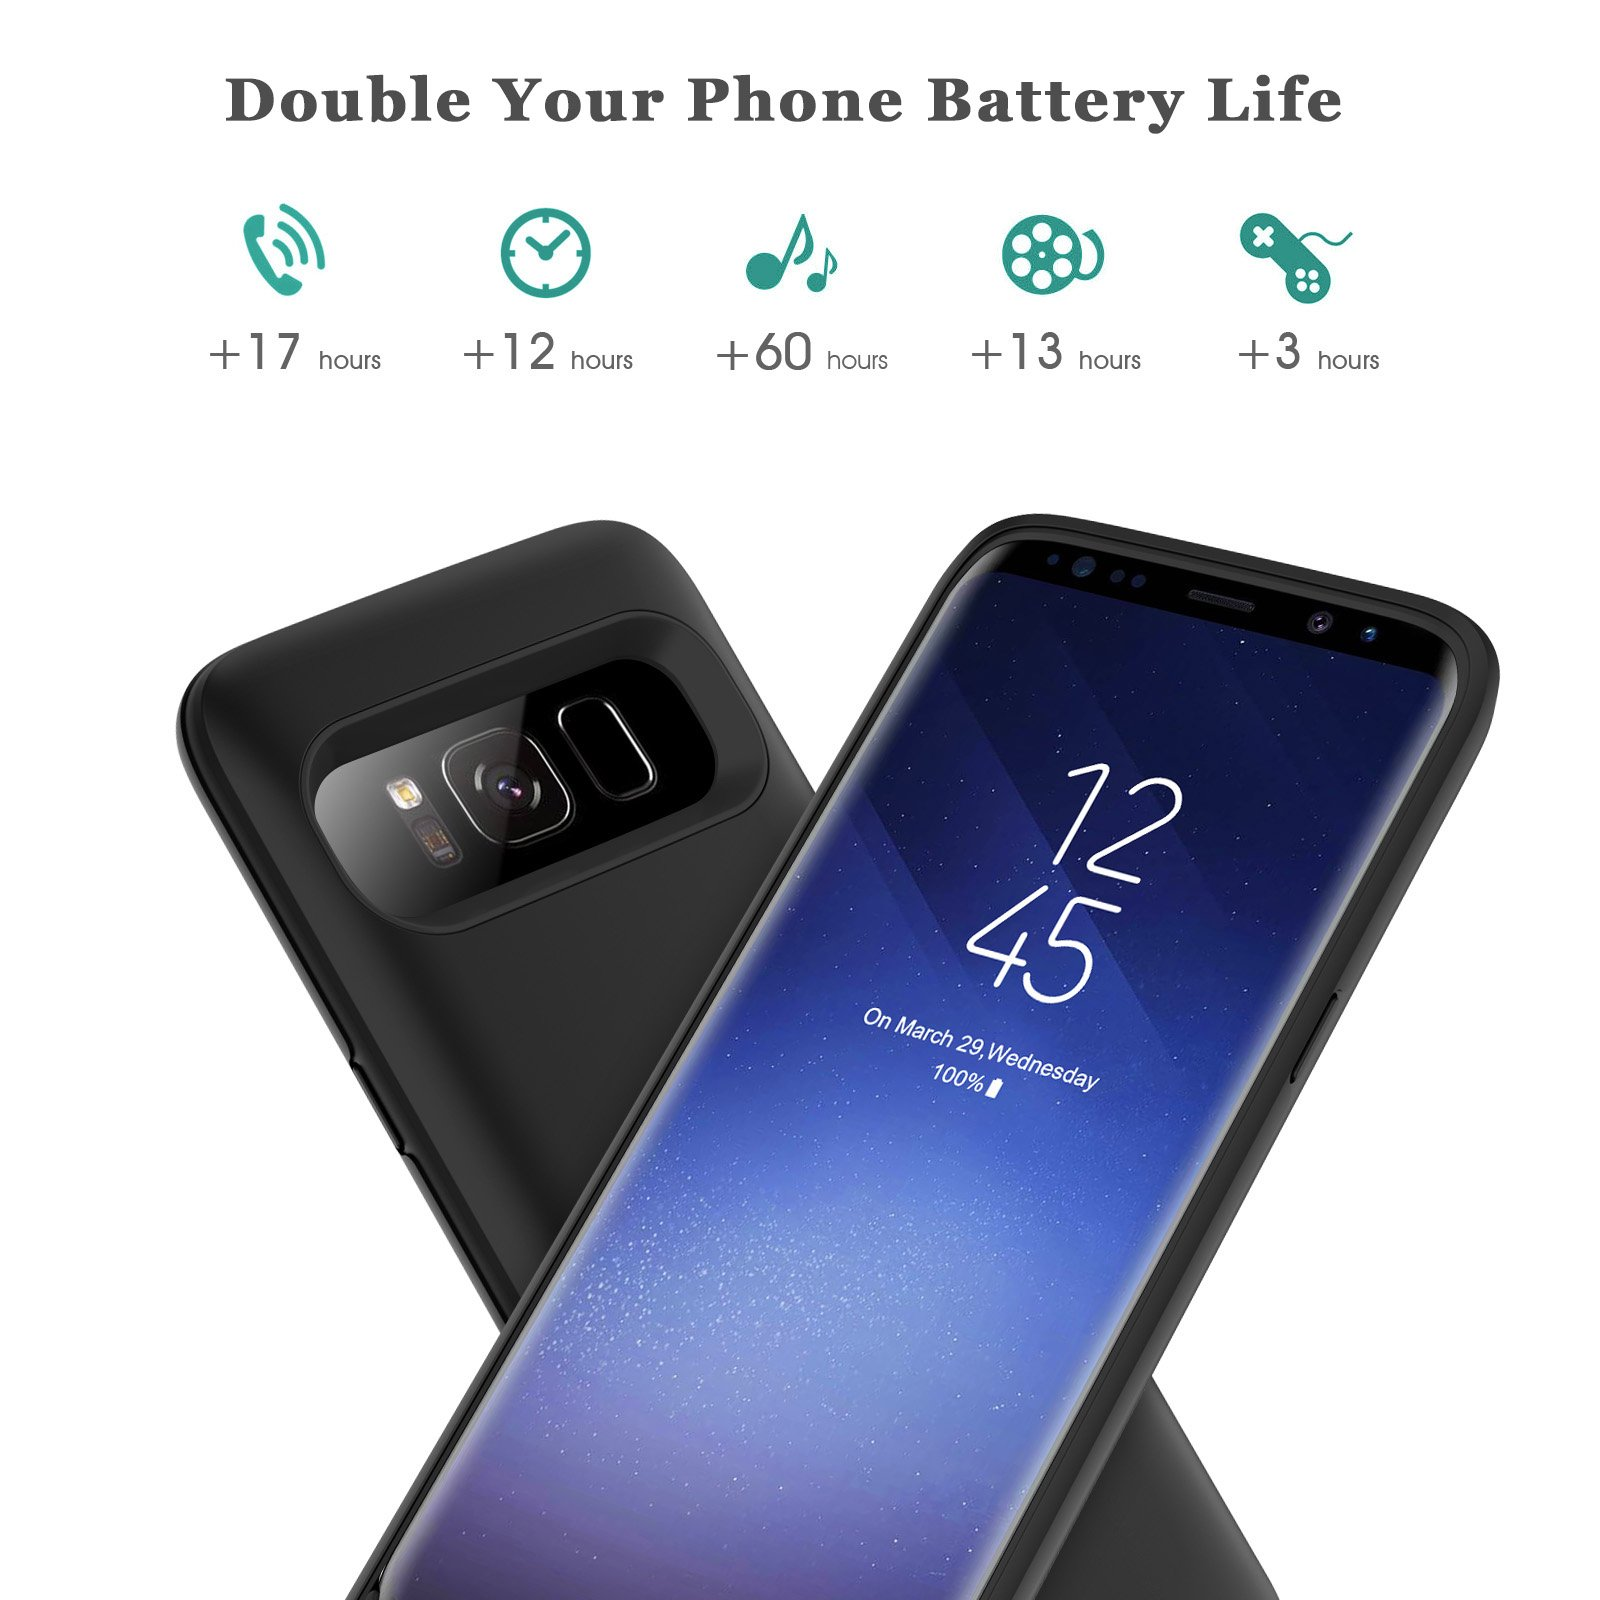 Galaxy S8 Plus Battery Case 6500mah,Rechargeable Charging CaseforSamsung GalaxyS8 Plus Backup Power Case Samsung S8+ Battery Cover-Black by Pxwaxpy (Image #3)